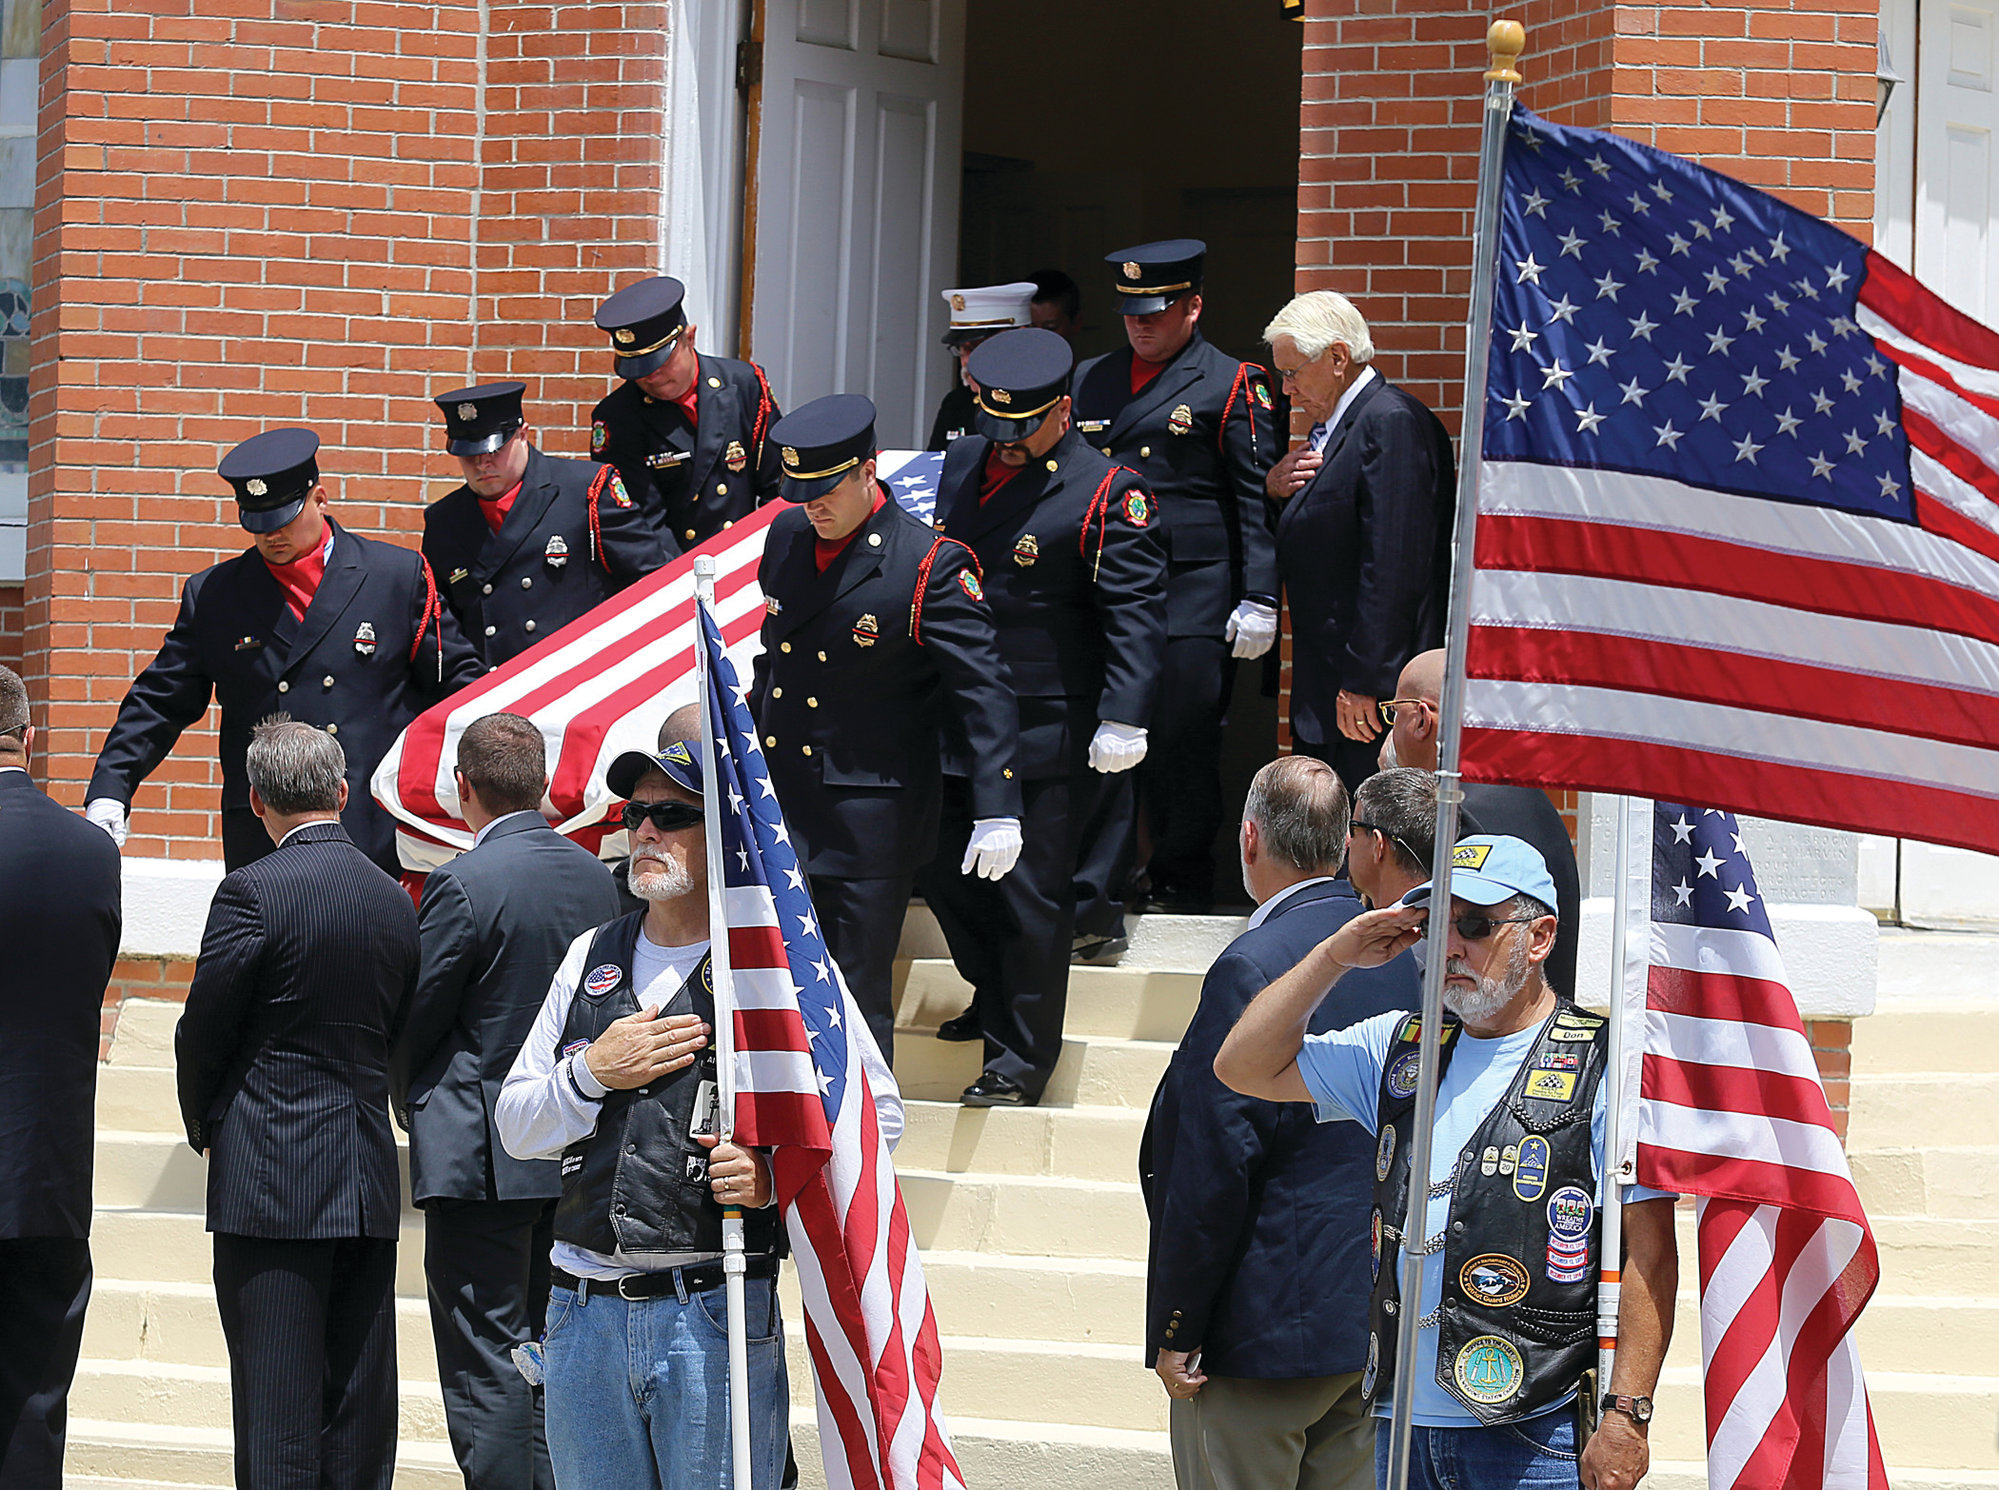 SUMTER ITEM FILE PHOTO  Pallbearers carry the casket of Mason Moore out of the Summerton Baptist Church as members of the Patriot Guard Riders salute the fallen officer on May 28, 2017.